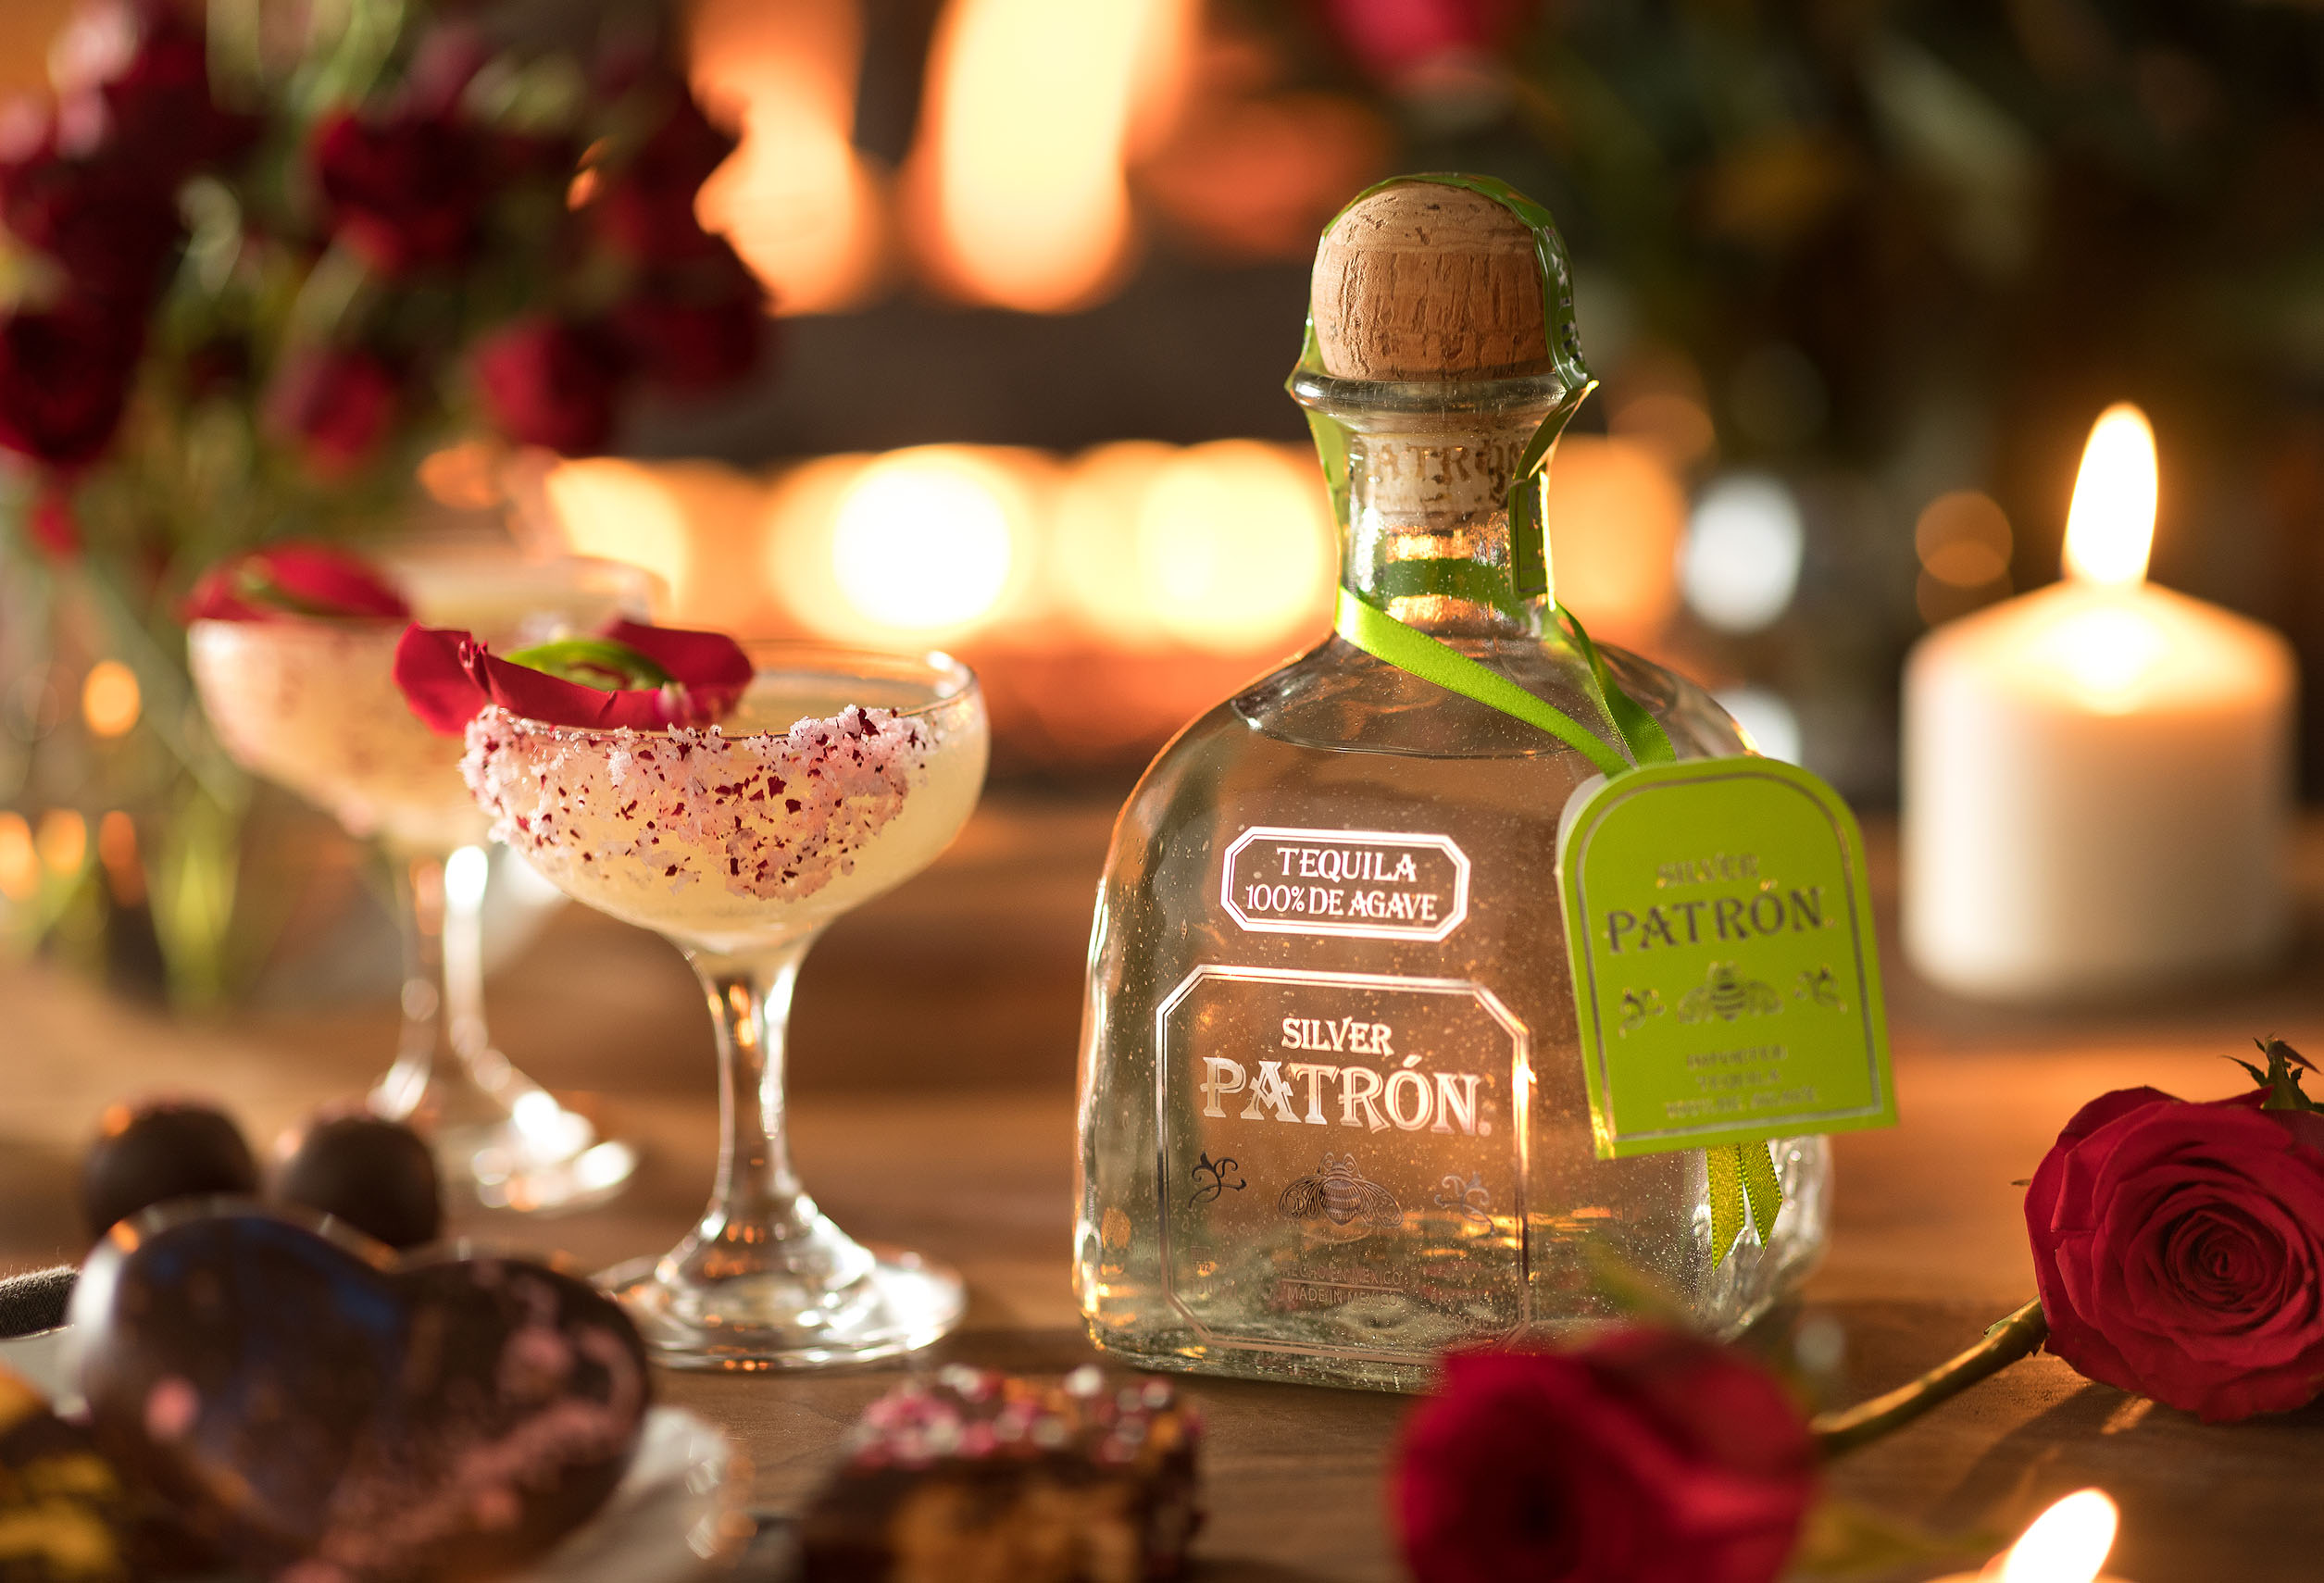 Cocktail with Patron Tequila Photographed by Styled Product Photographer Jason Risner